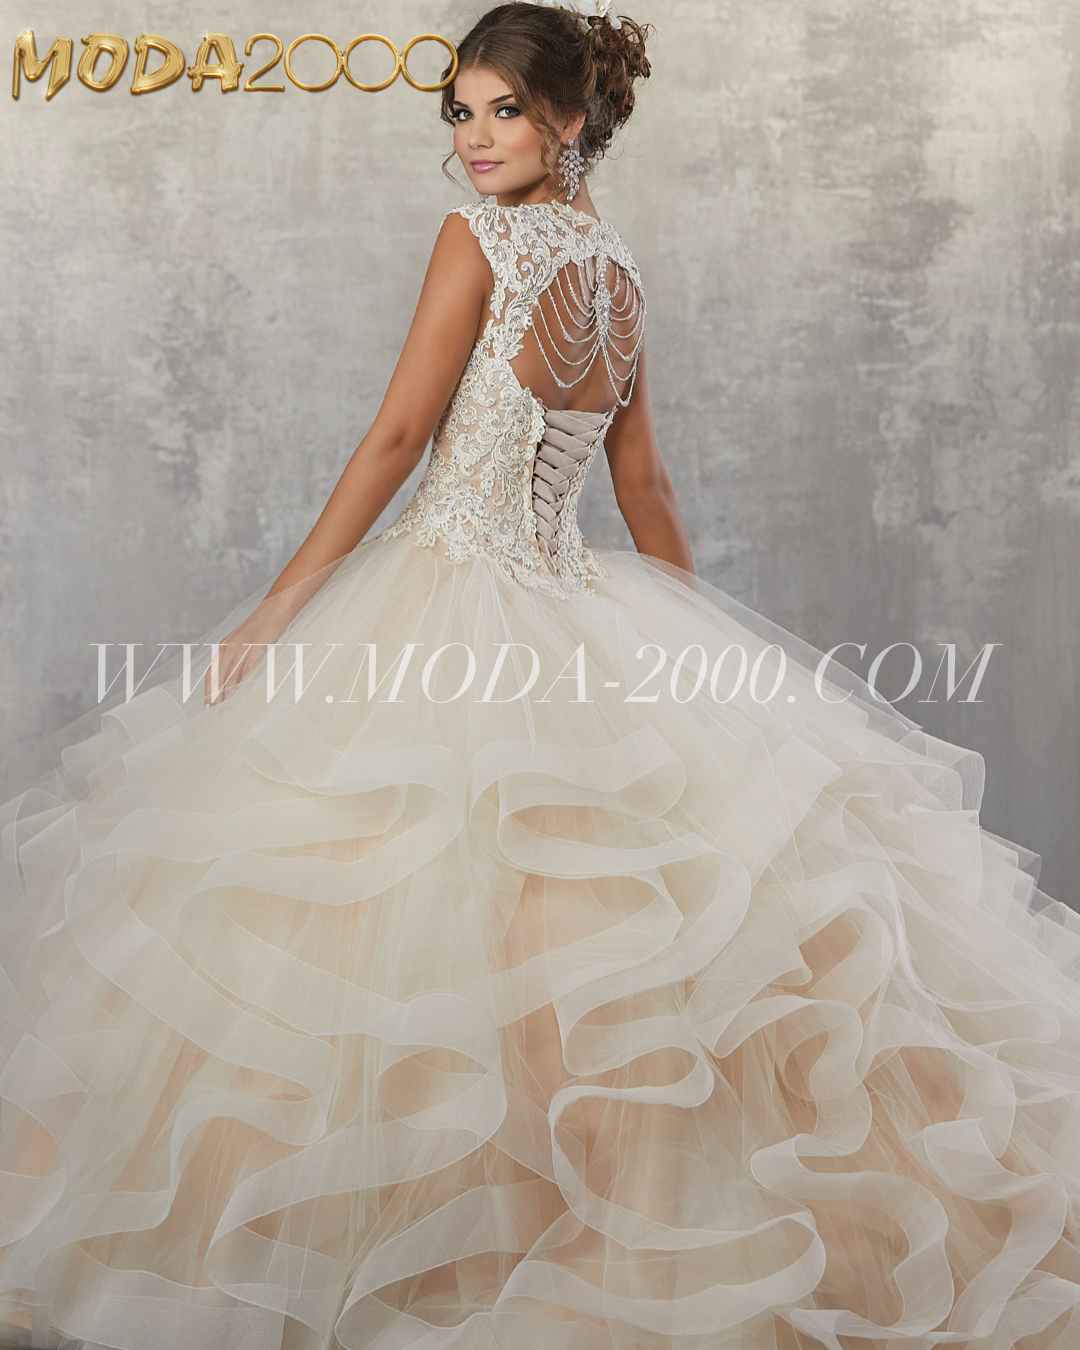 Beaded Lace Champagne Quinceanera Dress With Back Detail Big Ruffles Available At Moda 2000 Inst Champagne Quinceanera Dresses Quince Dress Official Dresses [ 1350 x 1080 Pixel ]